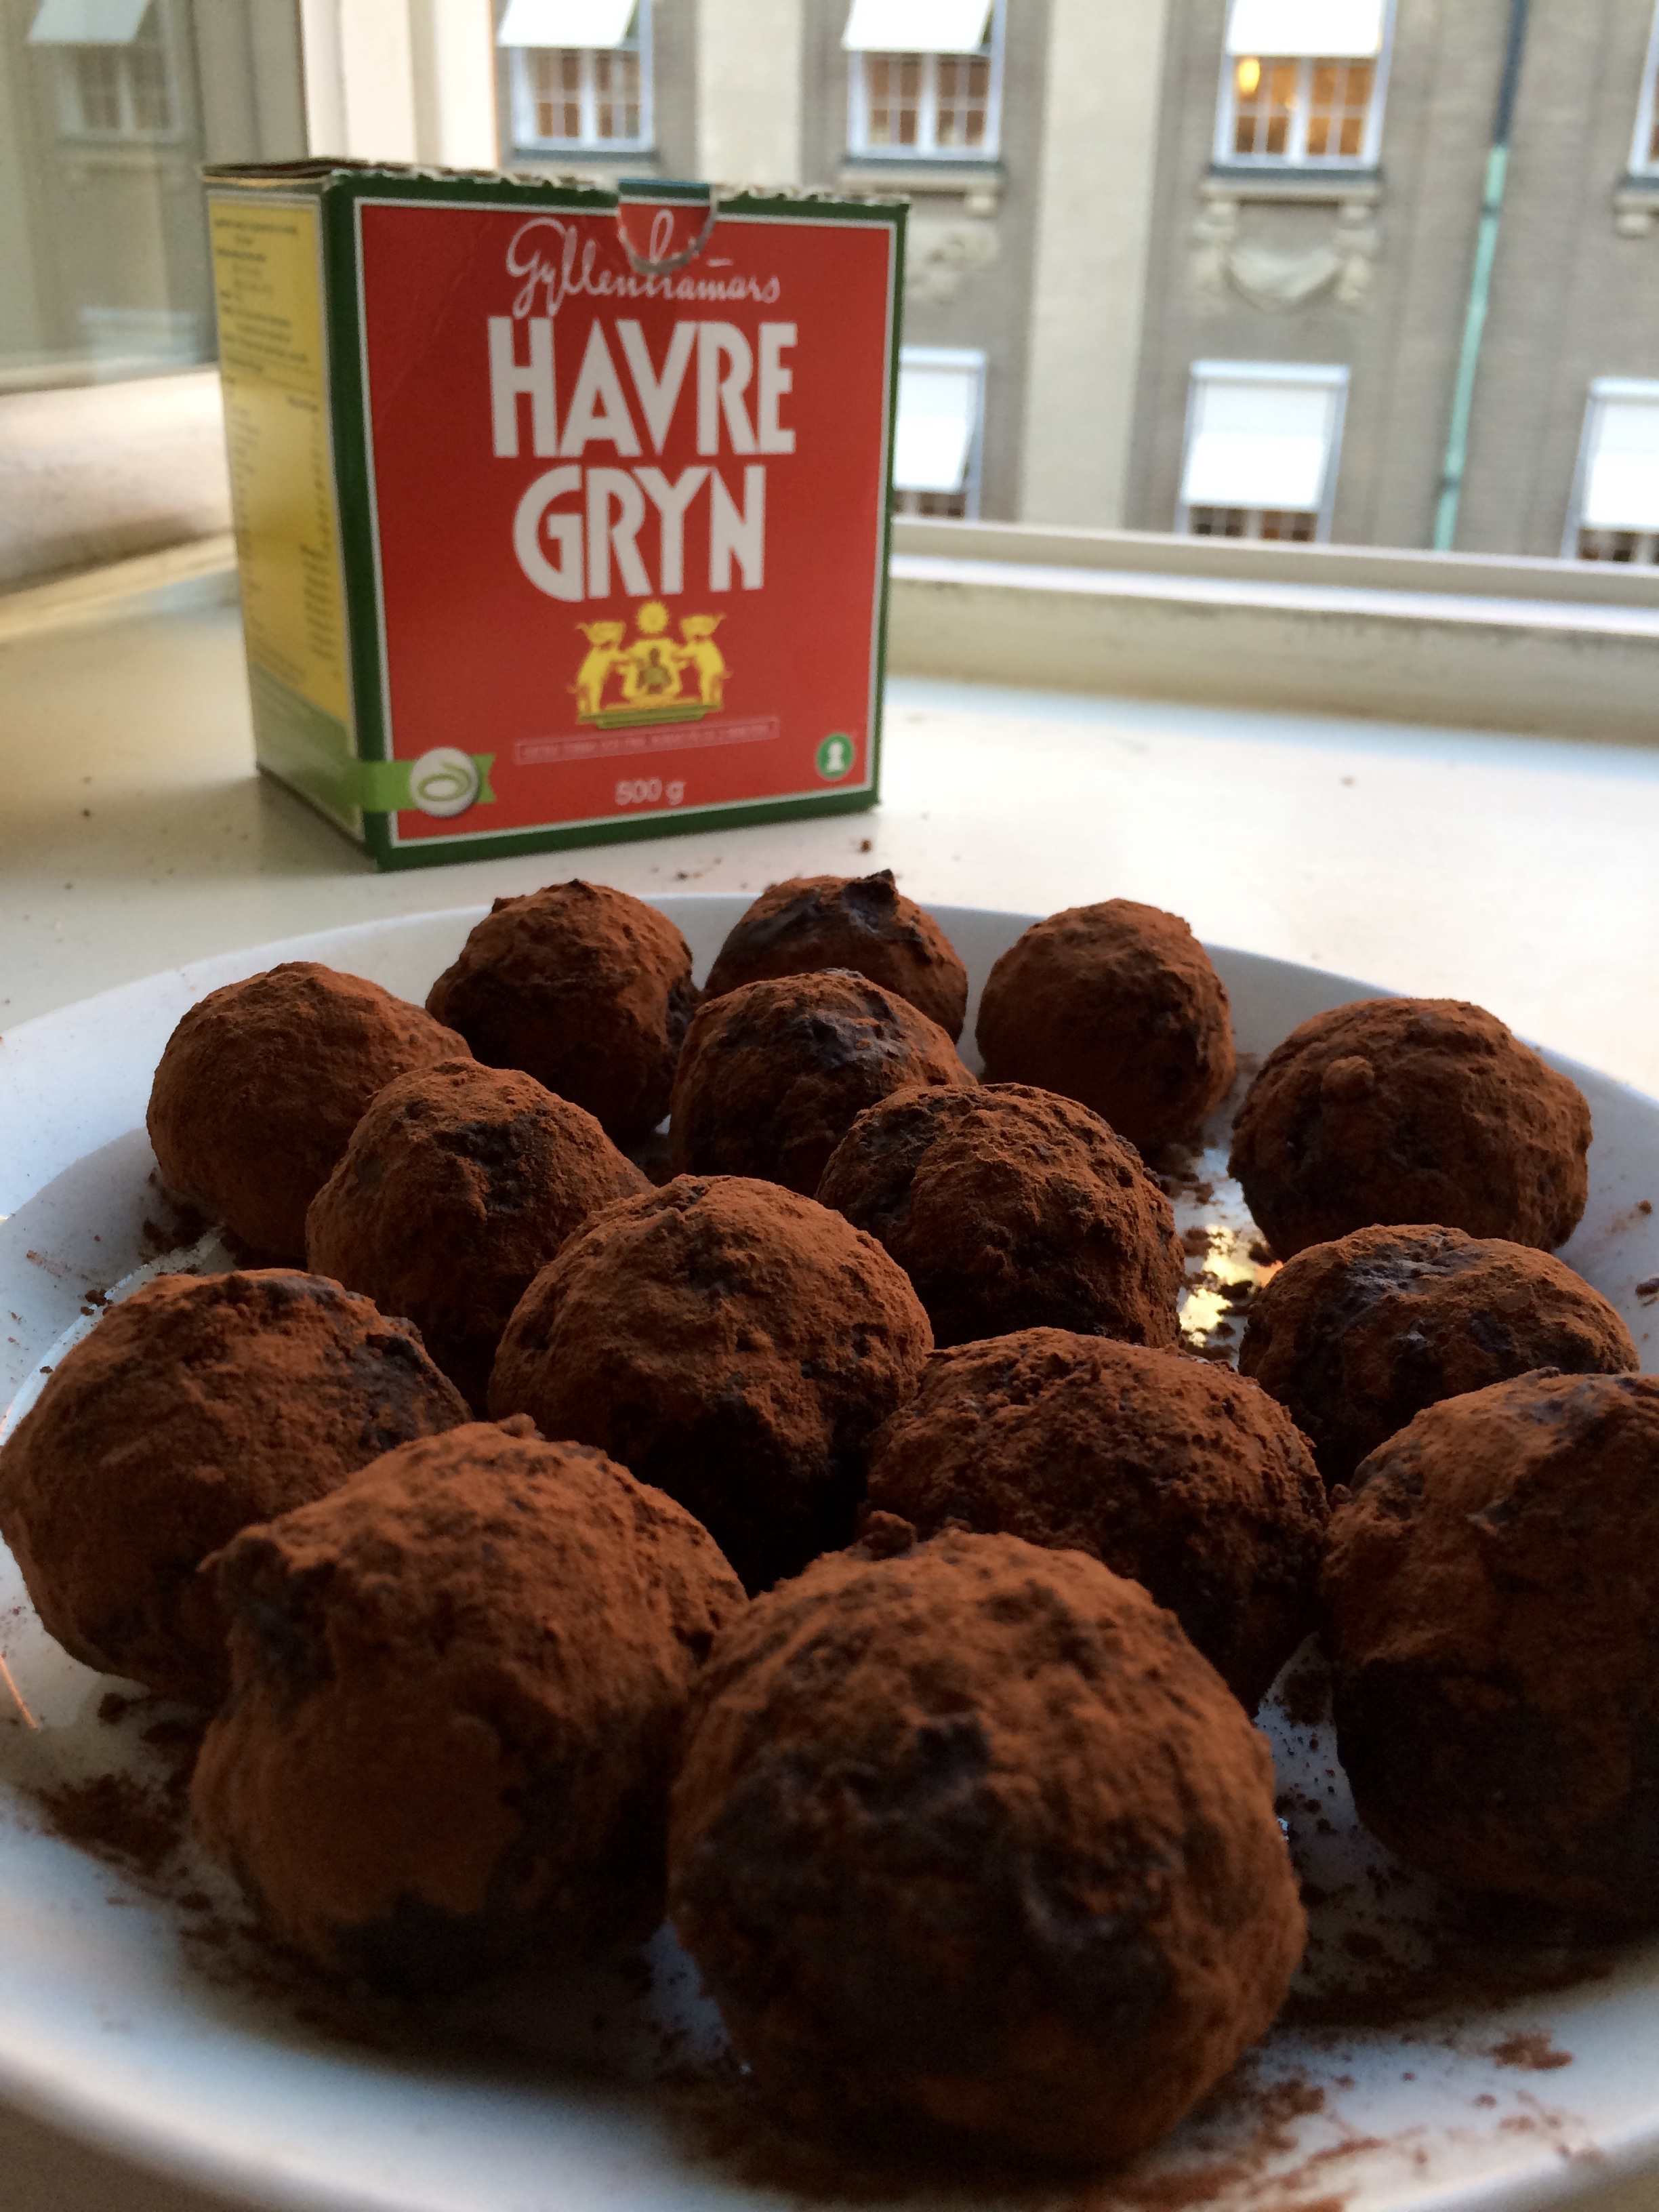 I like to also use Gyllenhamars  havre gryn  in Sweden. A picture of classic vegan chokladbollar rolled in cacao powder